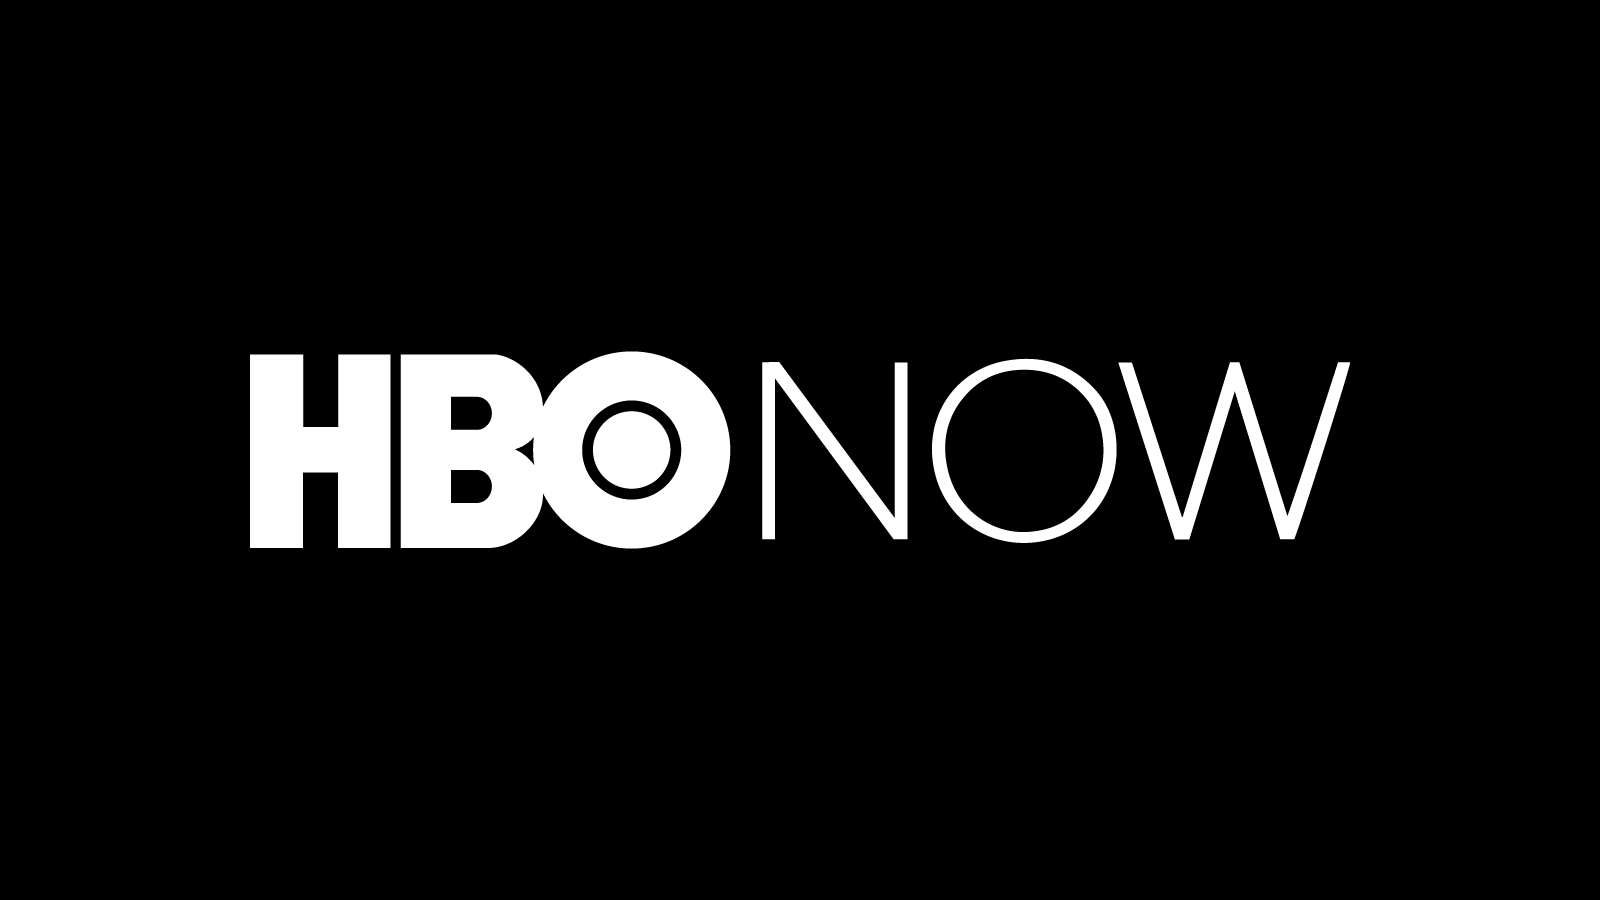 How to get HBONOW outside the US